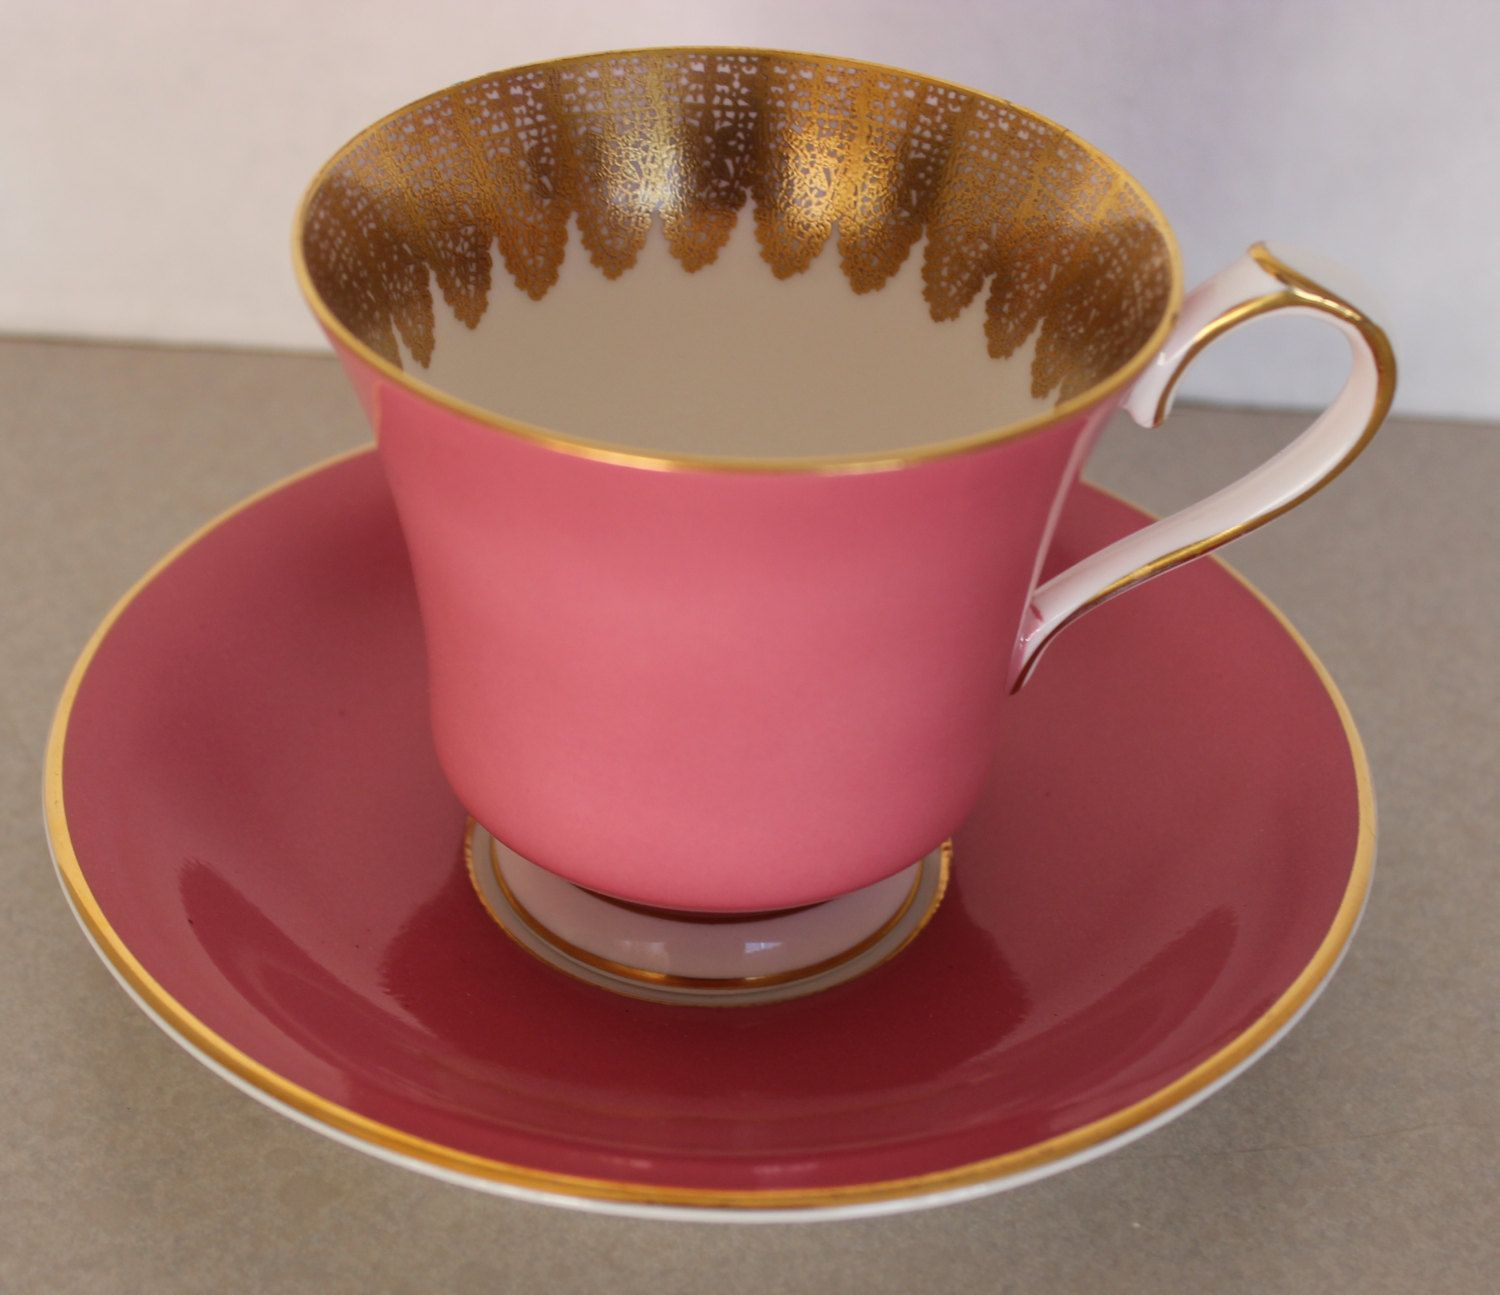 Vintage Ansley Pink and Gold Tea Cup and Saucer Set by Calessabay on Etsy